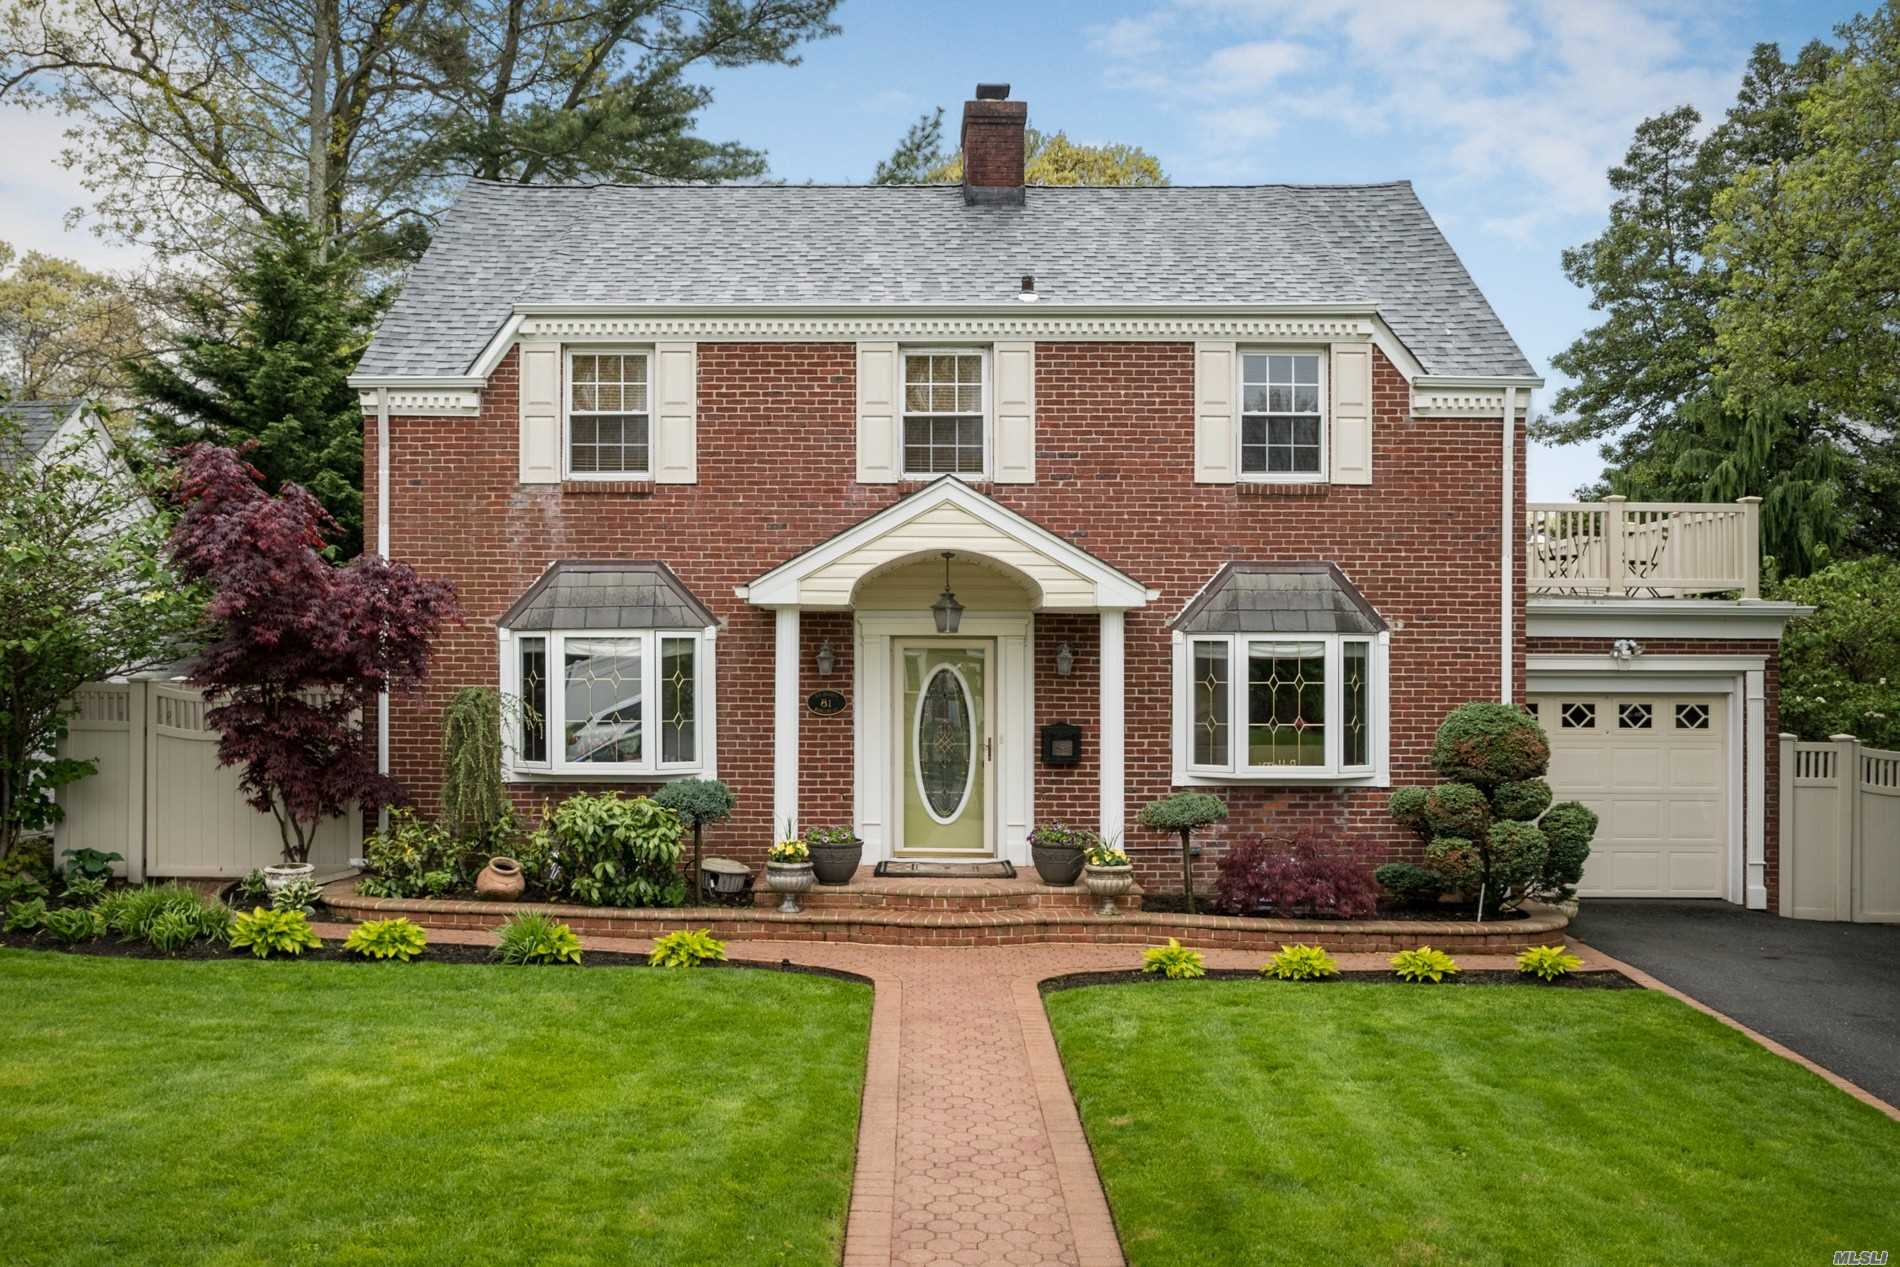 Stunning Stately Exp Center Hall Colonial In N. Freeport w/ Beautiful Curb Appeal. This 2298 Sq Ft Home Has It All! Spacious Extension On Main Flr w/ Open Flow & Tons Of Updates. Gorgeous Stone Fireplace Warms Inviting Living Rm w/ Beautiful French Doors Leading To Cozy Den. Formal Dining Rm Opens To Renovated Kitchen Over Granite Peninsula. Fully Manicured Lawns & Prof Landscaping w/ Full PVC Fence On Over-sized Lot. Entertainers Yard w/ Built-In BBQ & Outdoor Kitchen. Close To Rec Cntr!